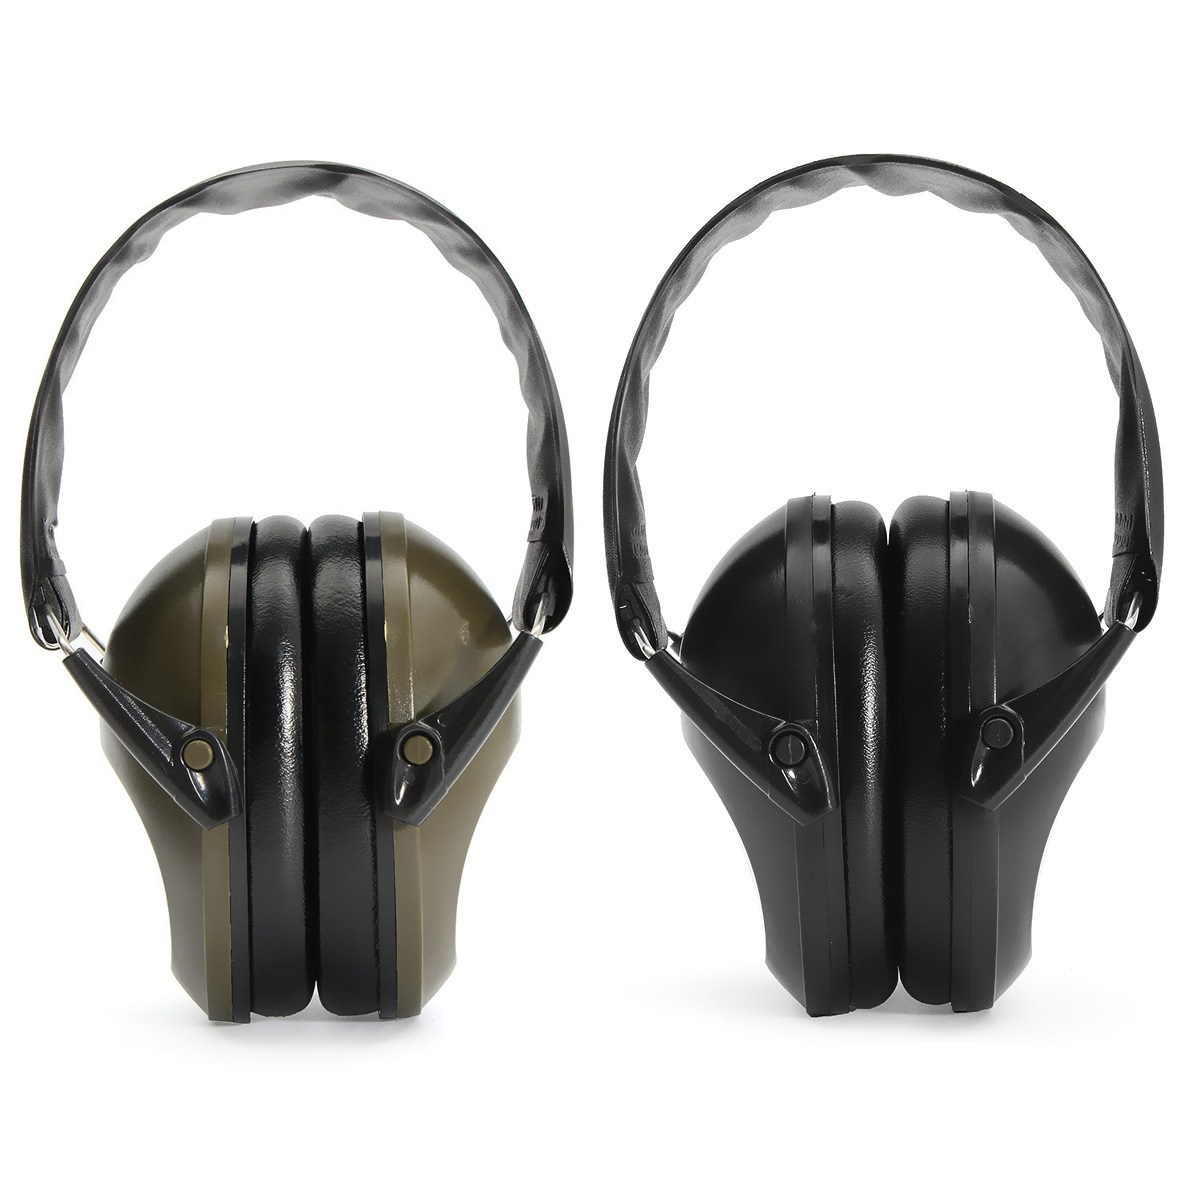 Safurance Anti-noise Ear Muff Hearing Protection Soundproof Shooting Earmuffs Earphone Noise Redution Workplace Safety giantree anti noise earmuffs anti noise ear protector ear muff hearing protection for outdoor hunting shooting sleep soundproof